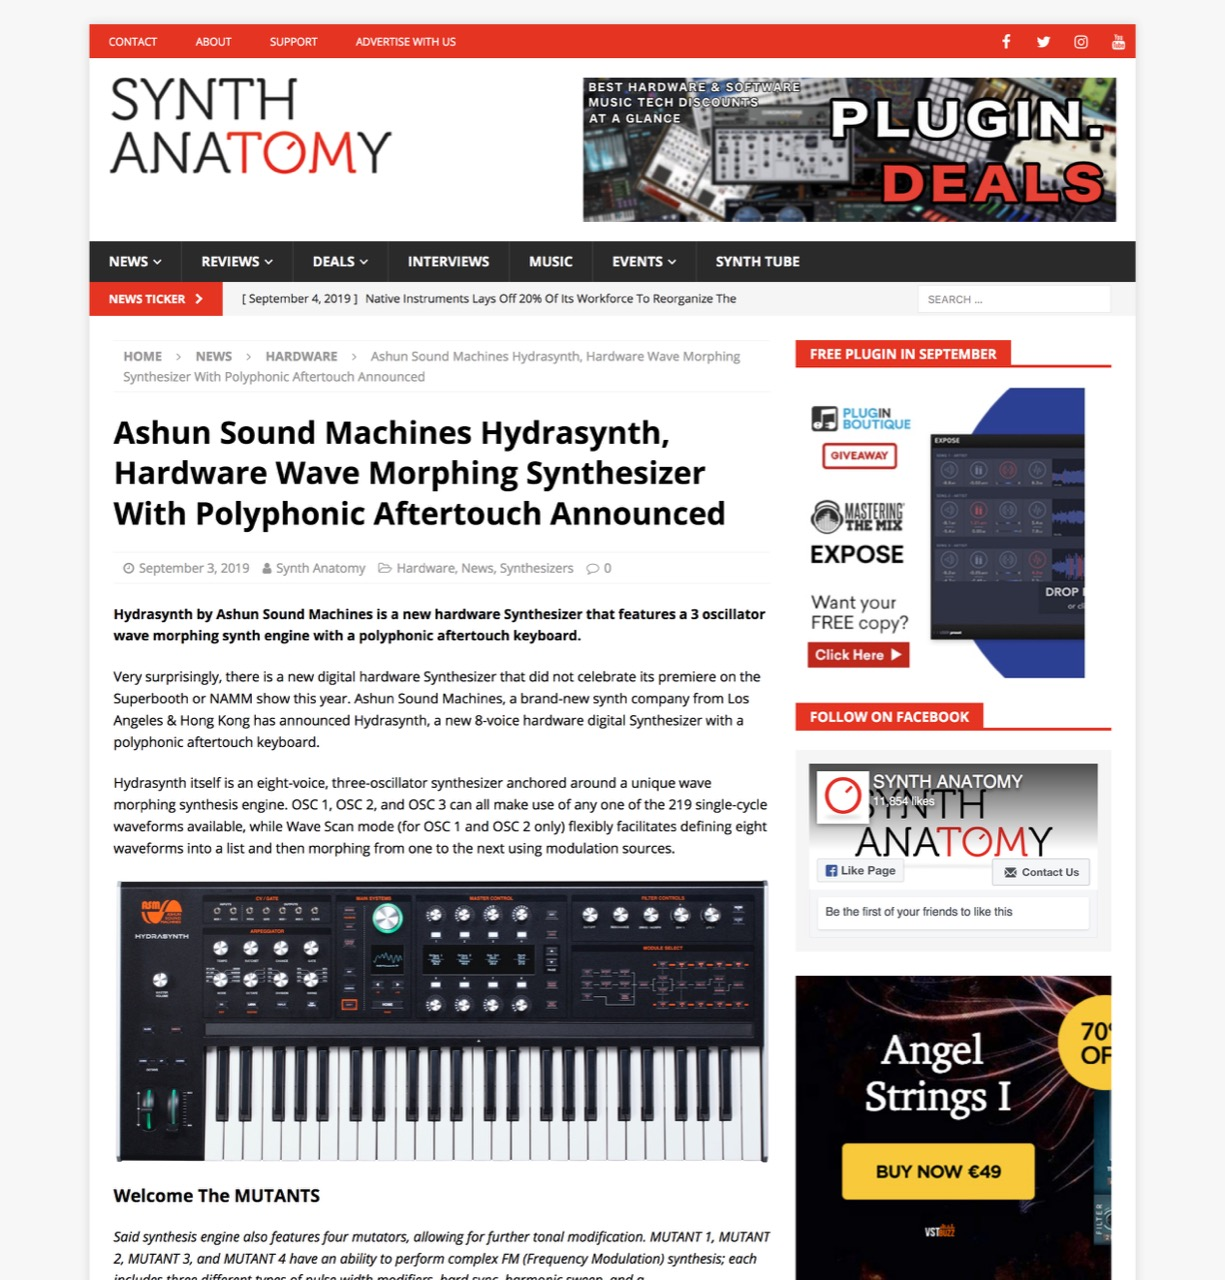 Hydrasynth, New Hardware Digital Synthesizer With Polyphonic Aftertouch